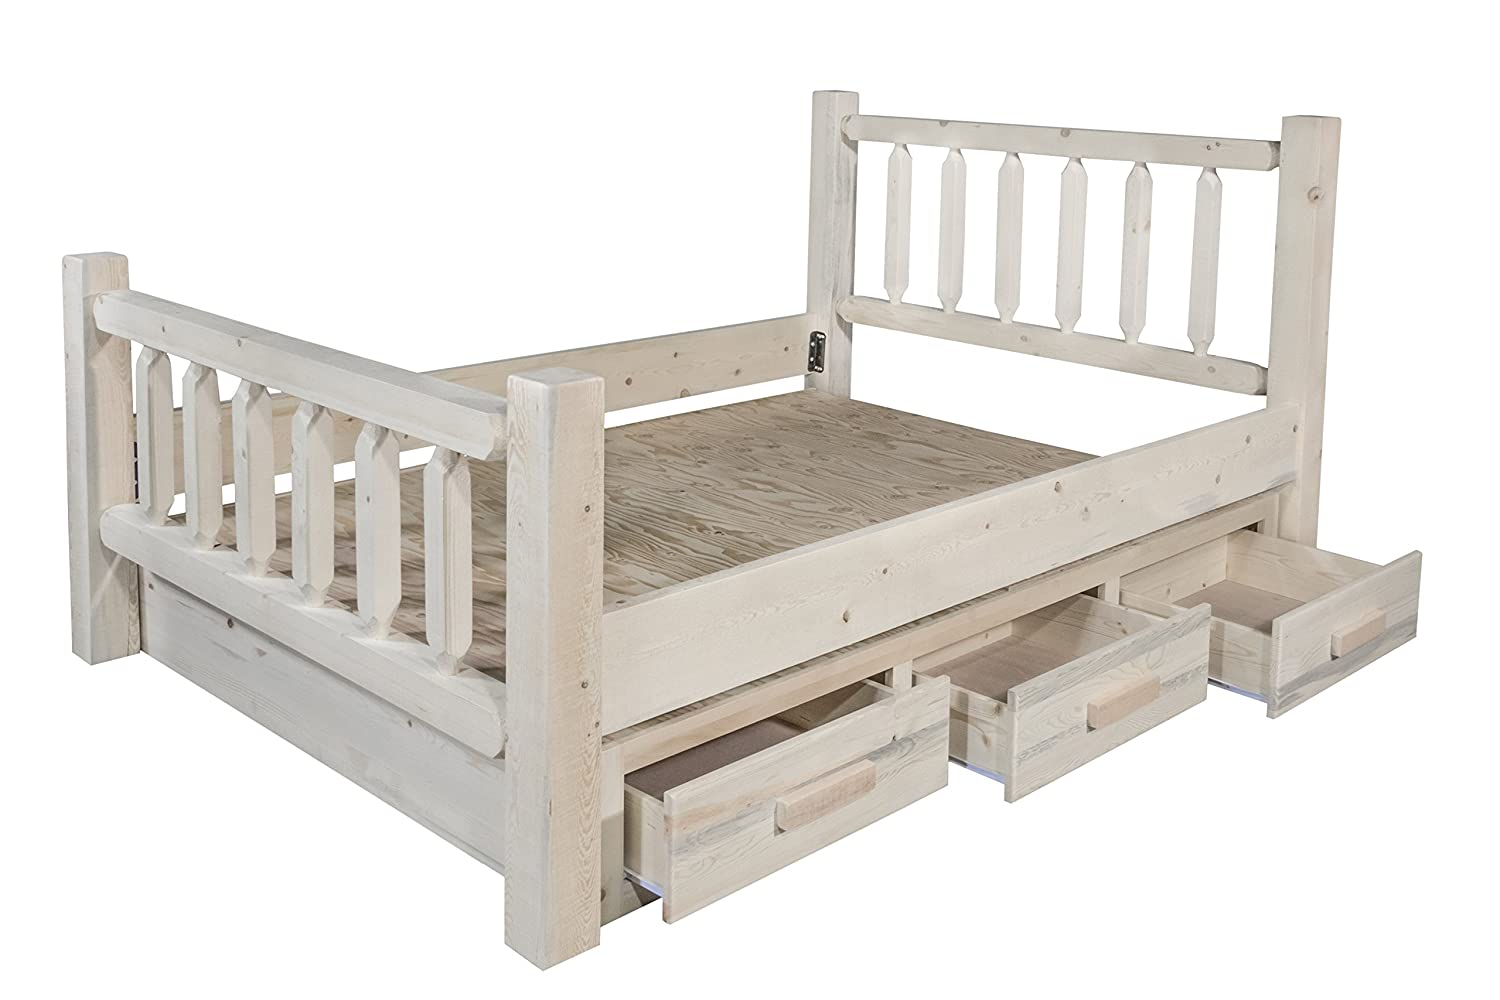 Amazon.com: Montana Woodworks MWHCSBK Homestead Collection King Bed with Storage, Ready to Finish: Kitchen & Dining